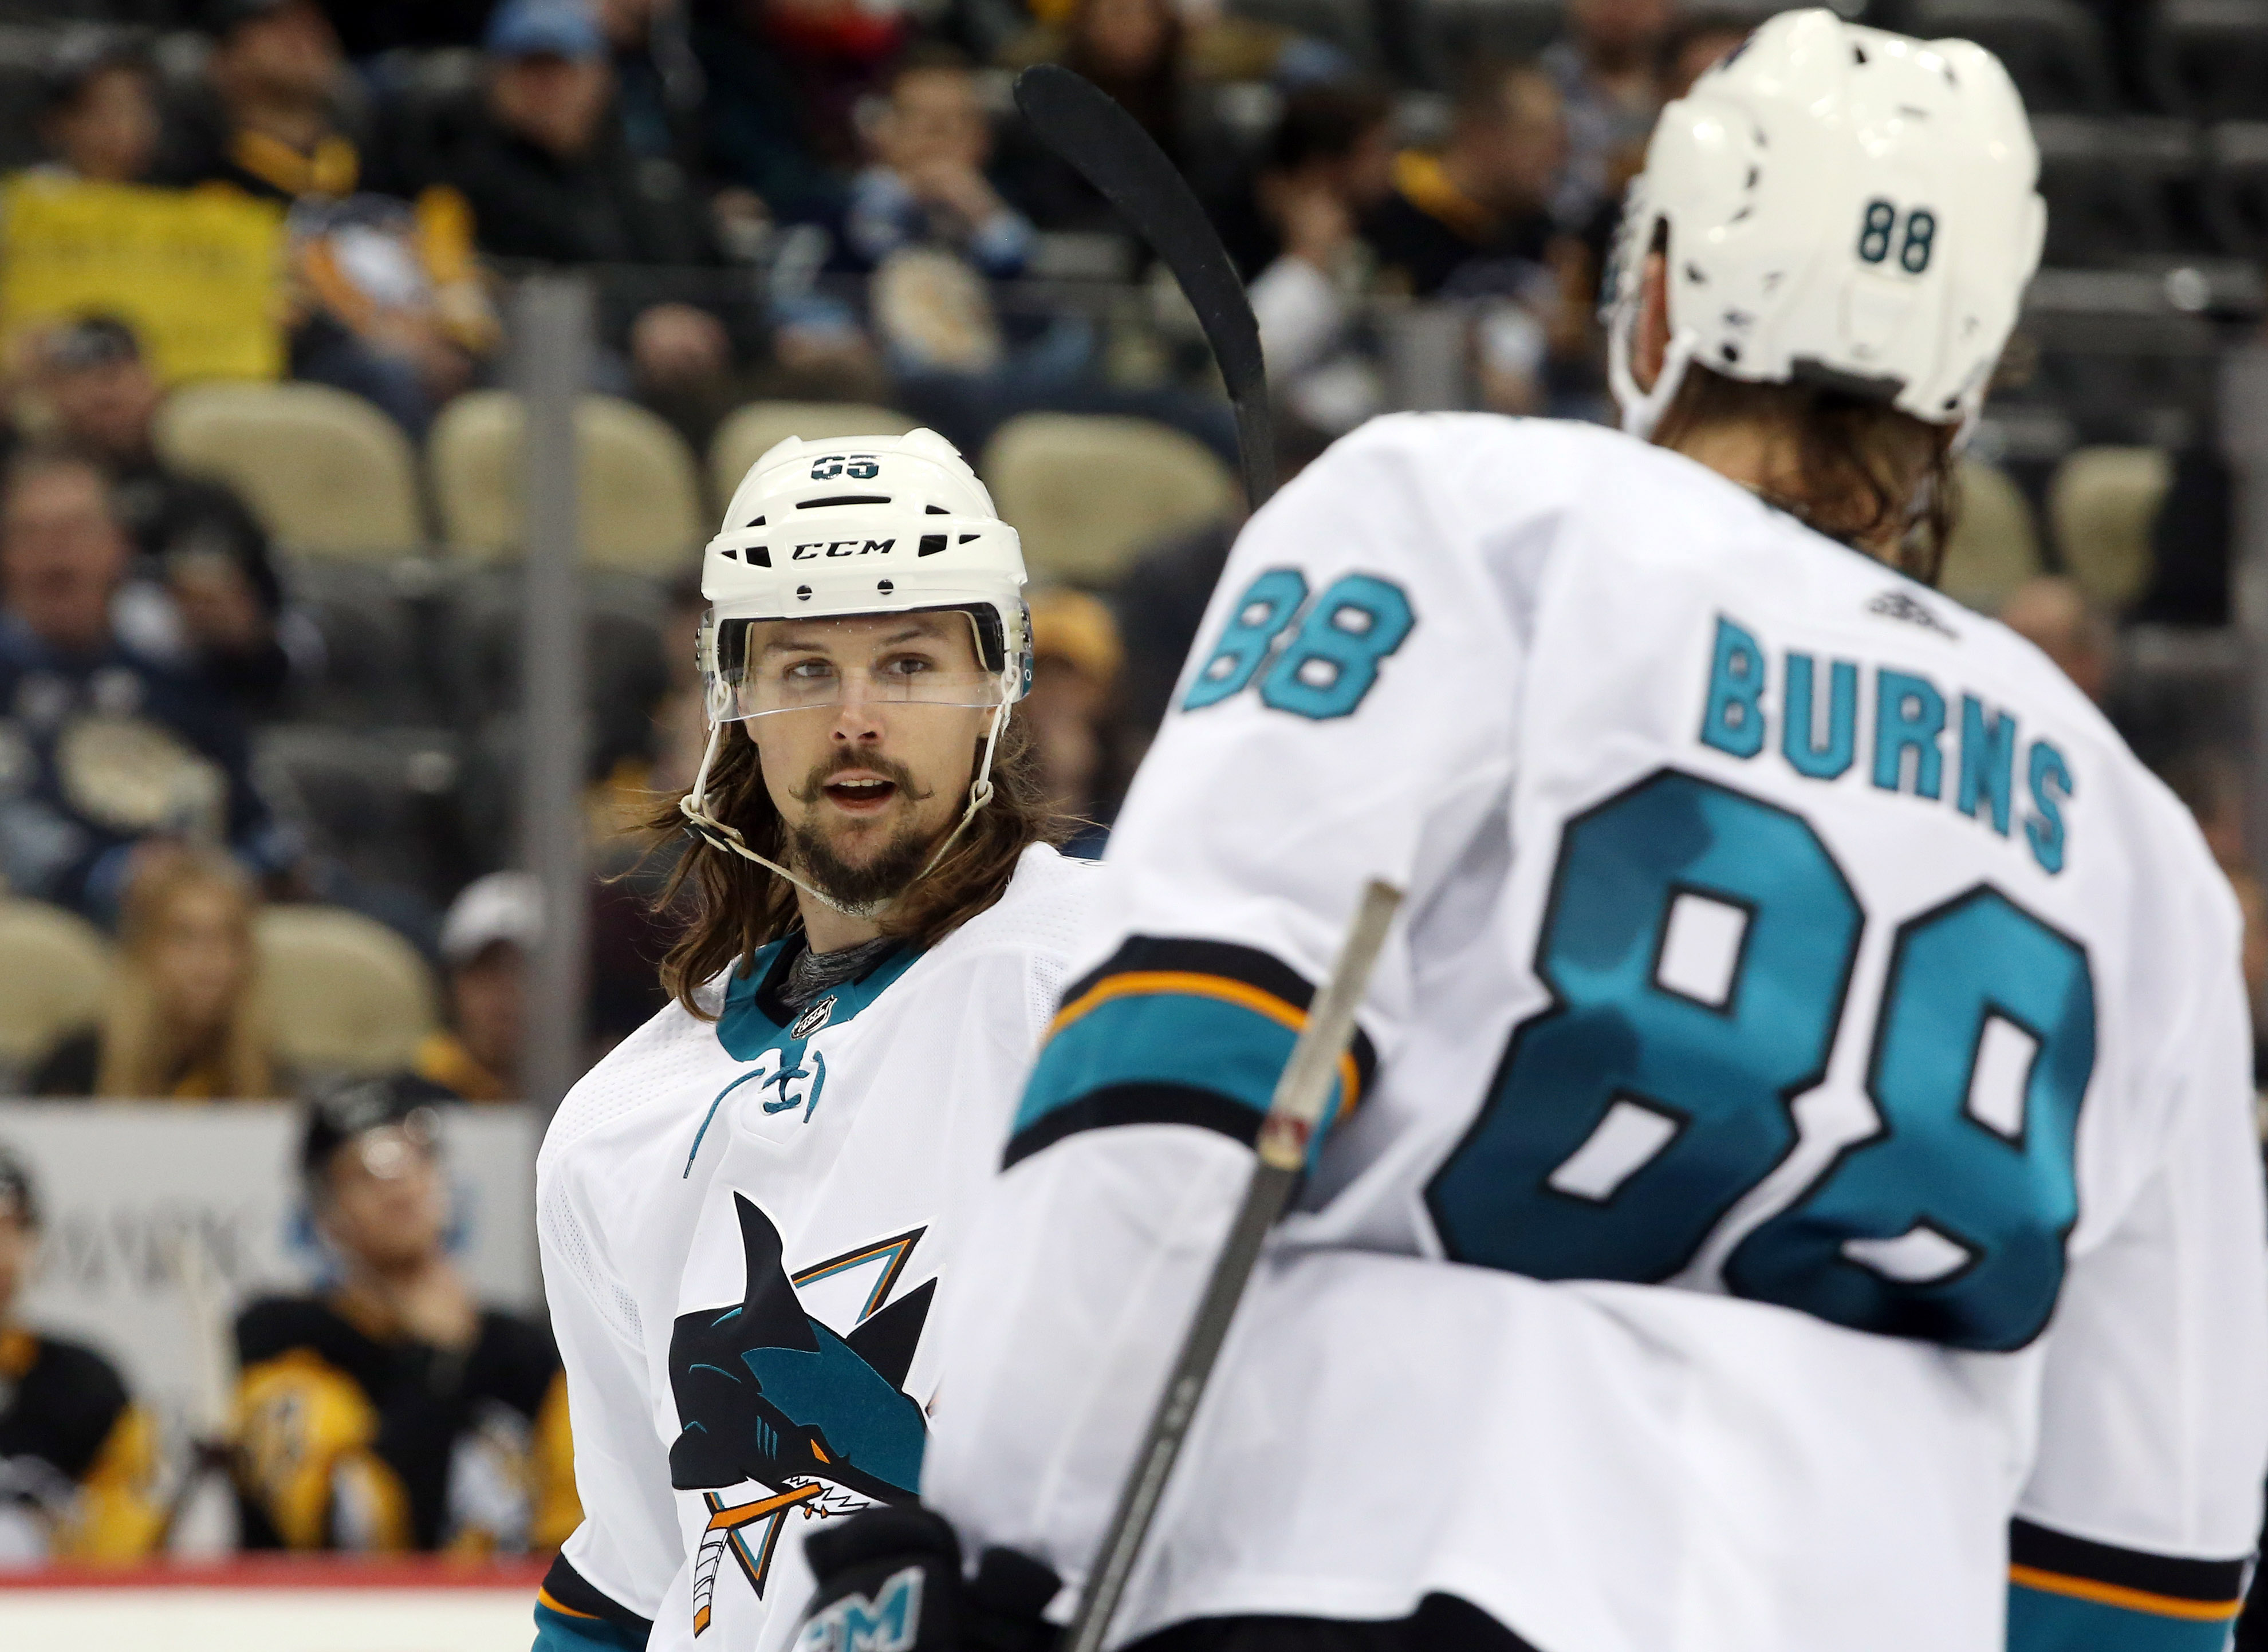 San Jose Sharks defenseman Erik Karlsson (65) reacts to a goal by defenseman Brent Burns (88) against the Pittsburgh Penguins during the third period at PPG PAINTS Arena. San Jose shutout the Penguins 4-0.